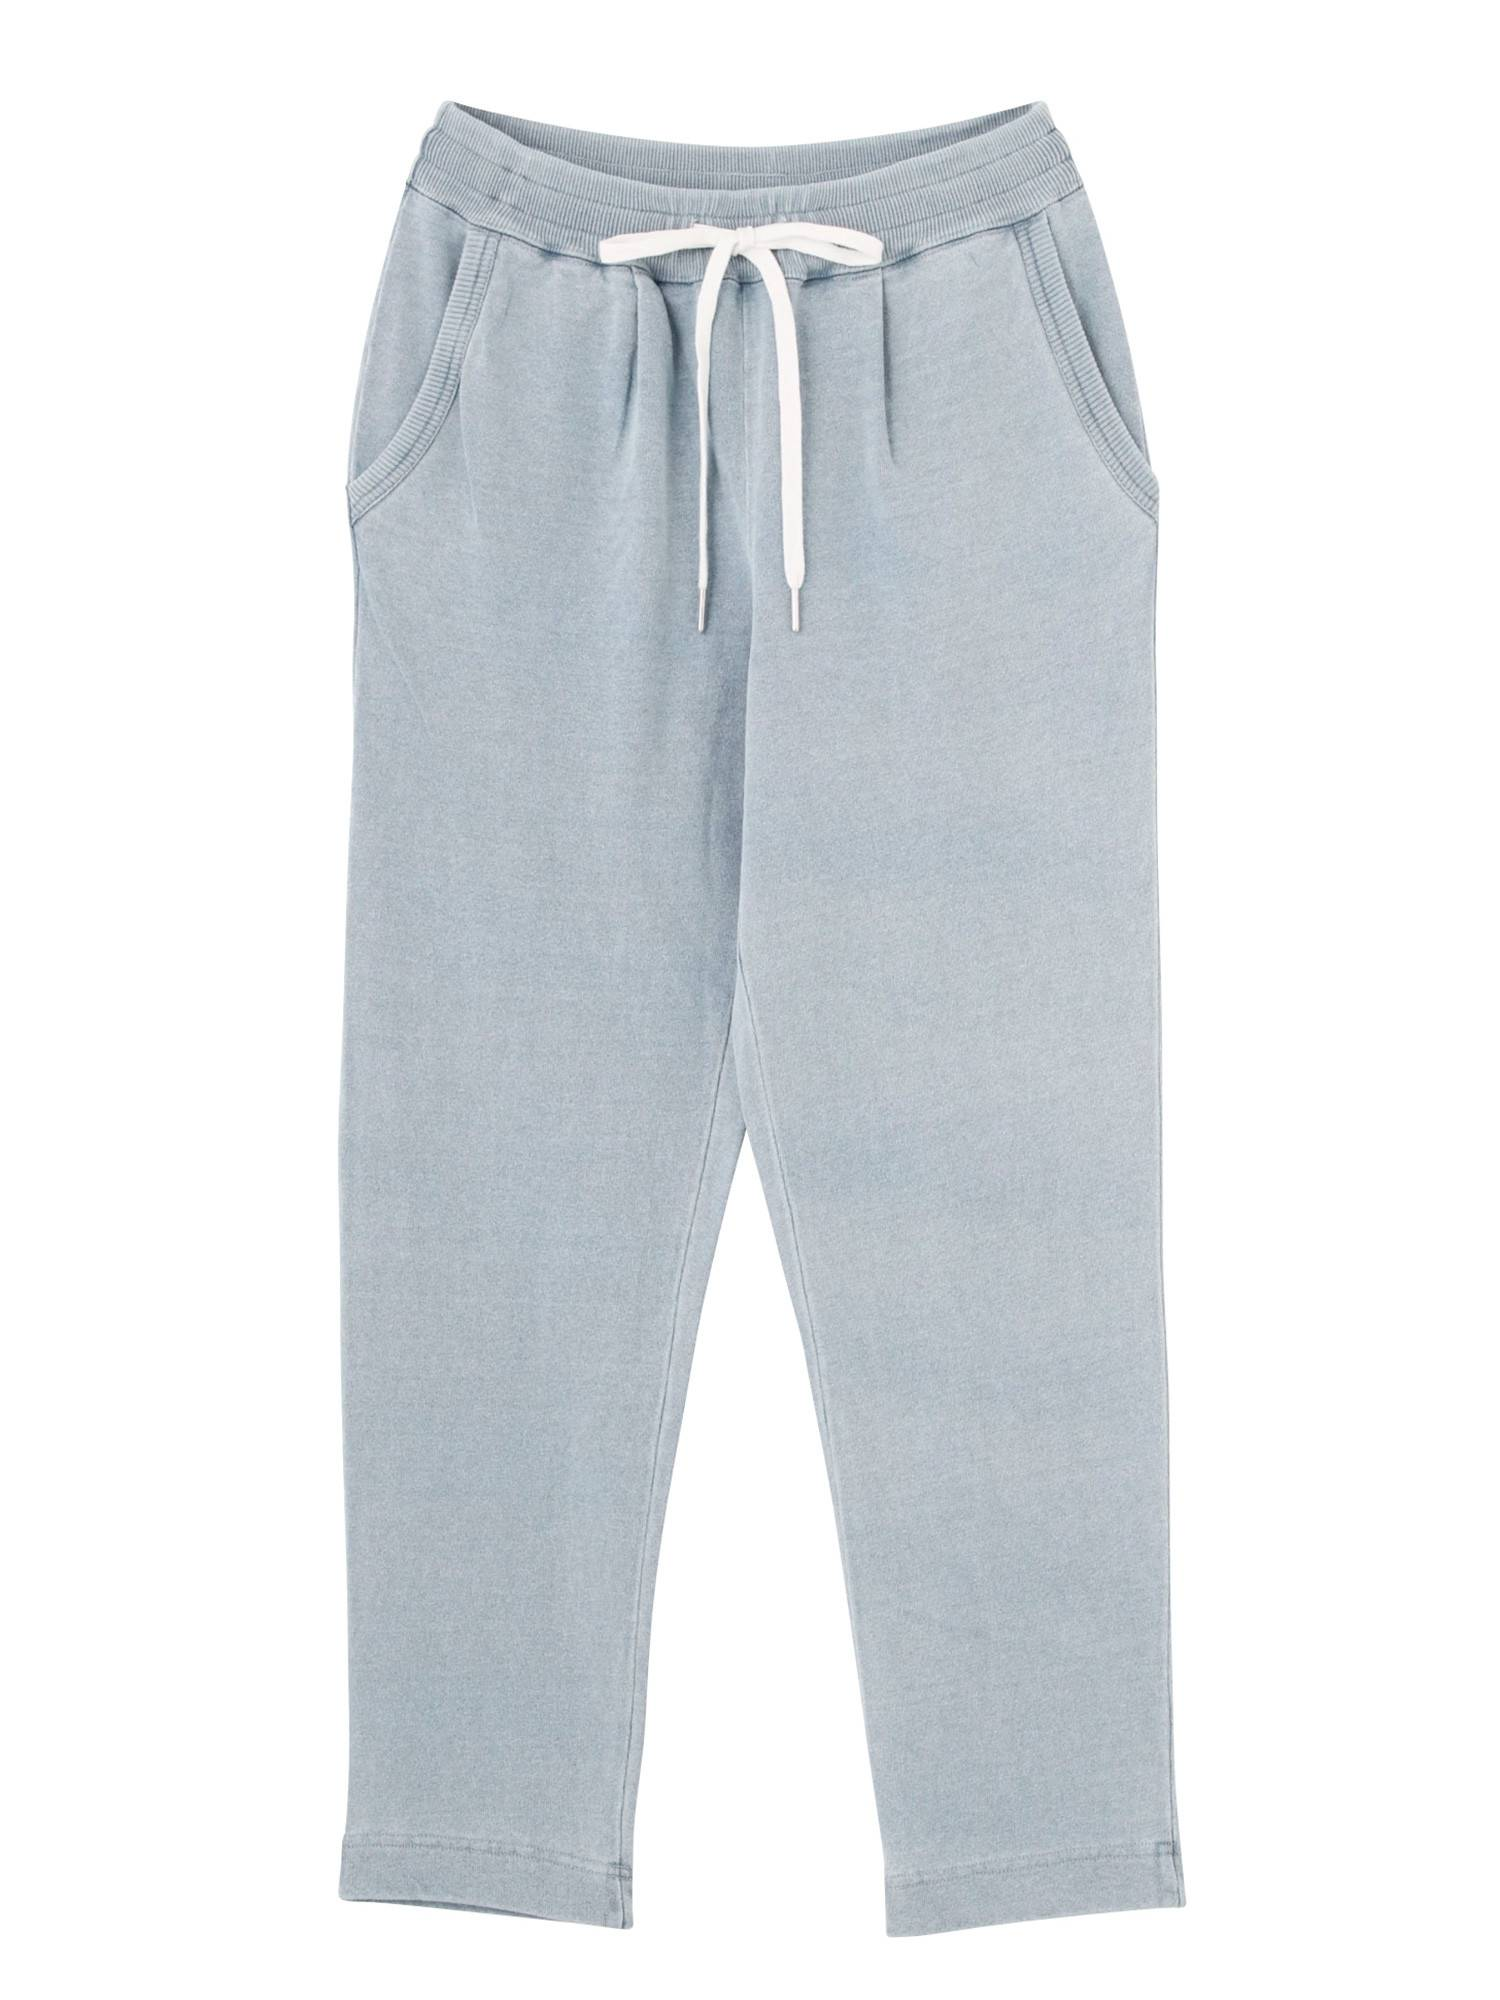 [WOMEN] Indigo fleece pants